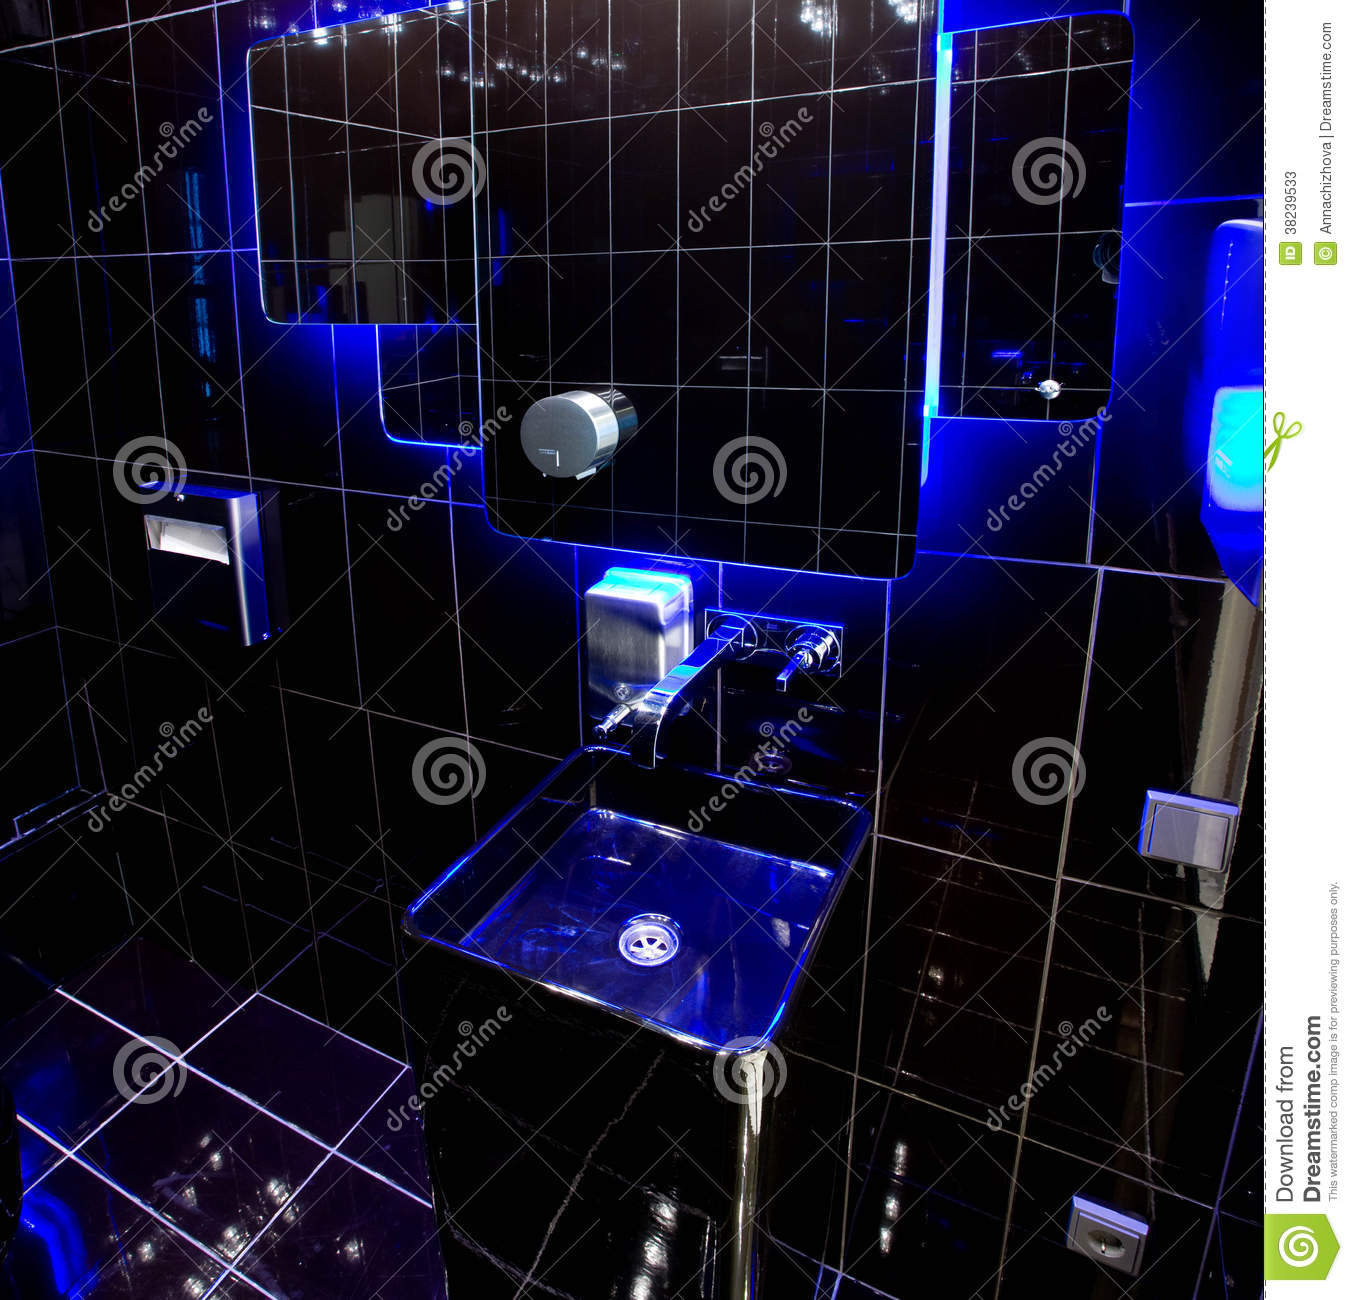 Black Bathroom With Blue Backlight Stock Image - Image of abstract on black and blue construction, black and blue landscaping, red and blue bathroom, blue and green bathroom, black and blue accessories, blue and grey themed bathroom, black and blue sunroom, pink and blue bathroom, black and blue toys, black and blue lobby, blue and gray bathroom, blue and silver bathroom, blue and brown bathroom, black and blue door, black and gray bathrooms, black and blue furniture, lavender and blue bathroom, black and blue tv, black and blue glass, black and blue desk,